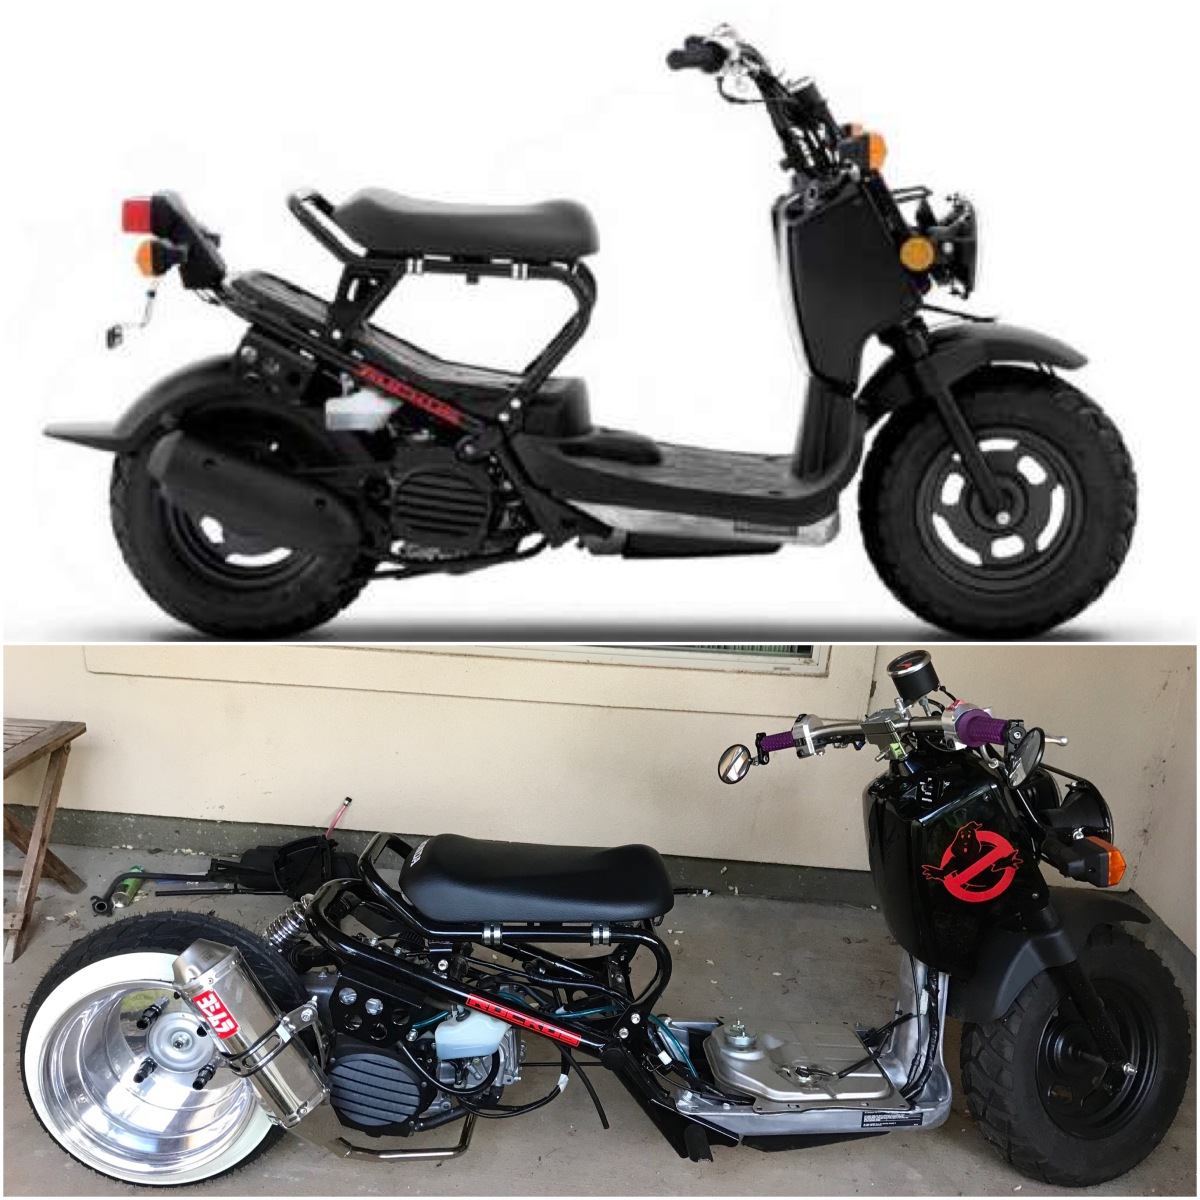 In Defense of a Honda Ruckus